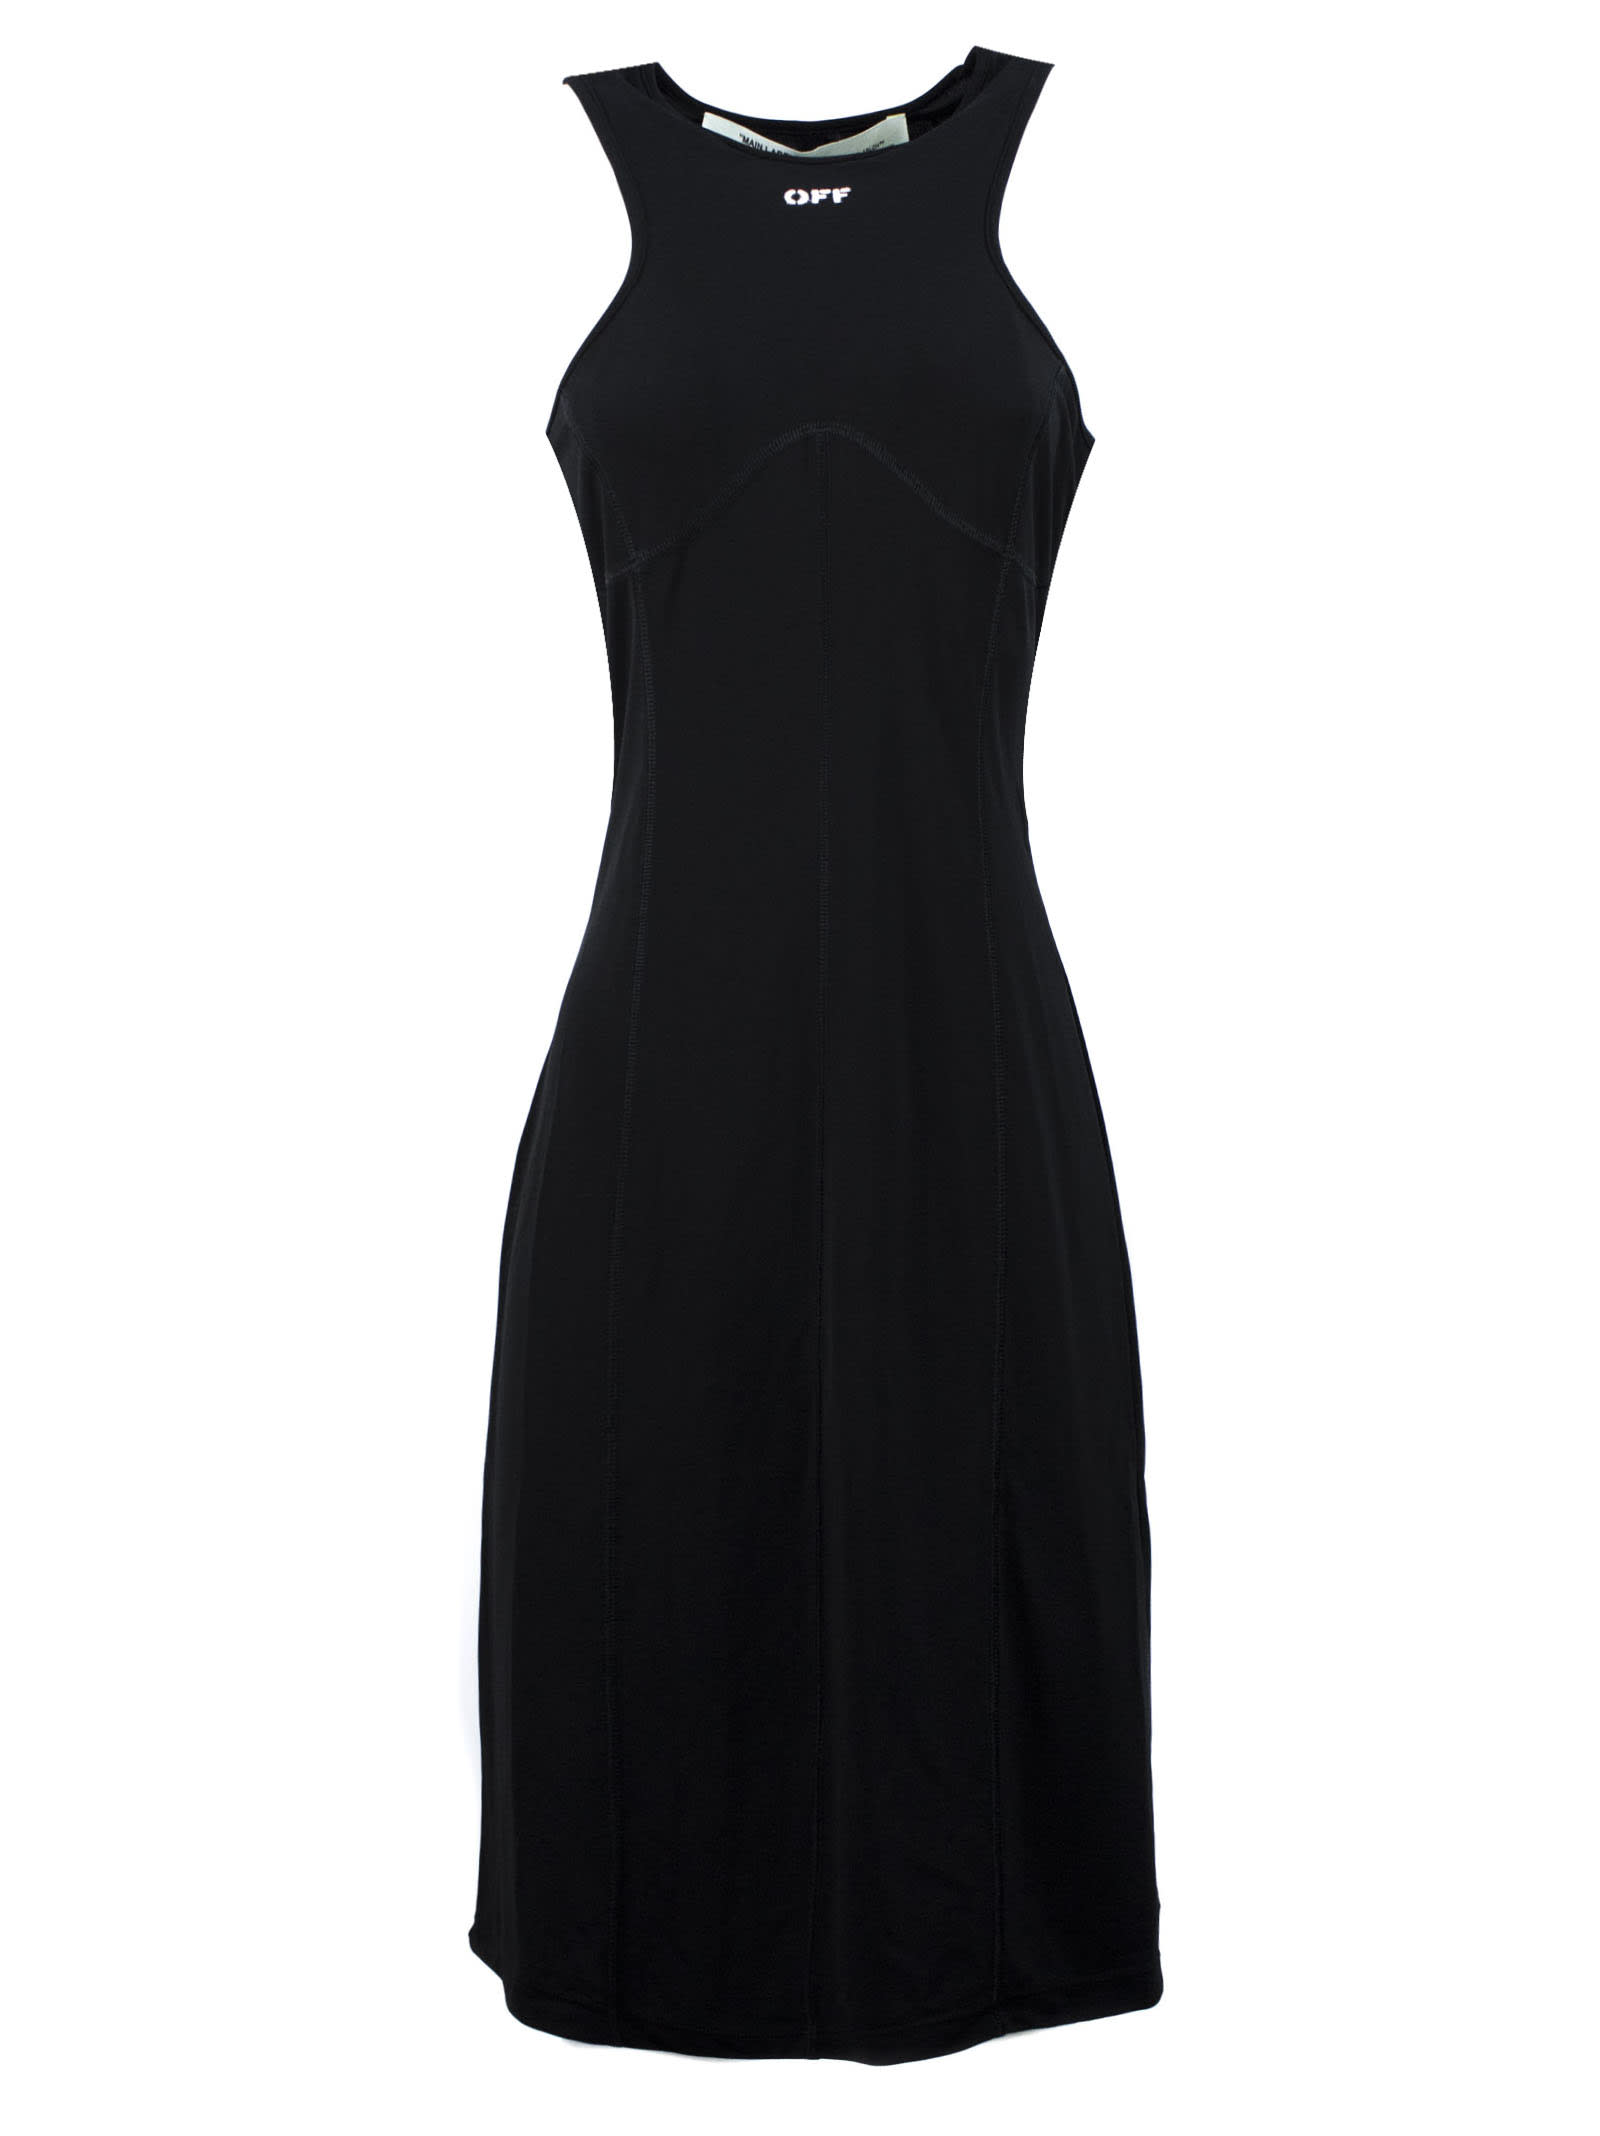 Buy Off-White Sleeveless Dress In Black online, shop Off-White with free shipping